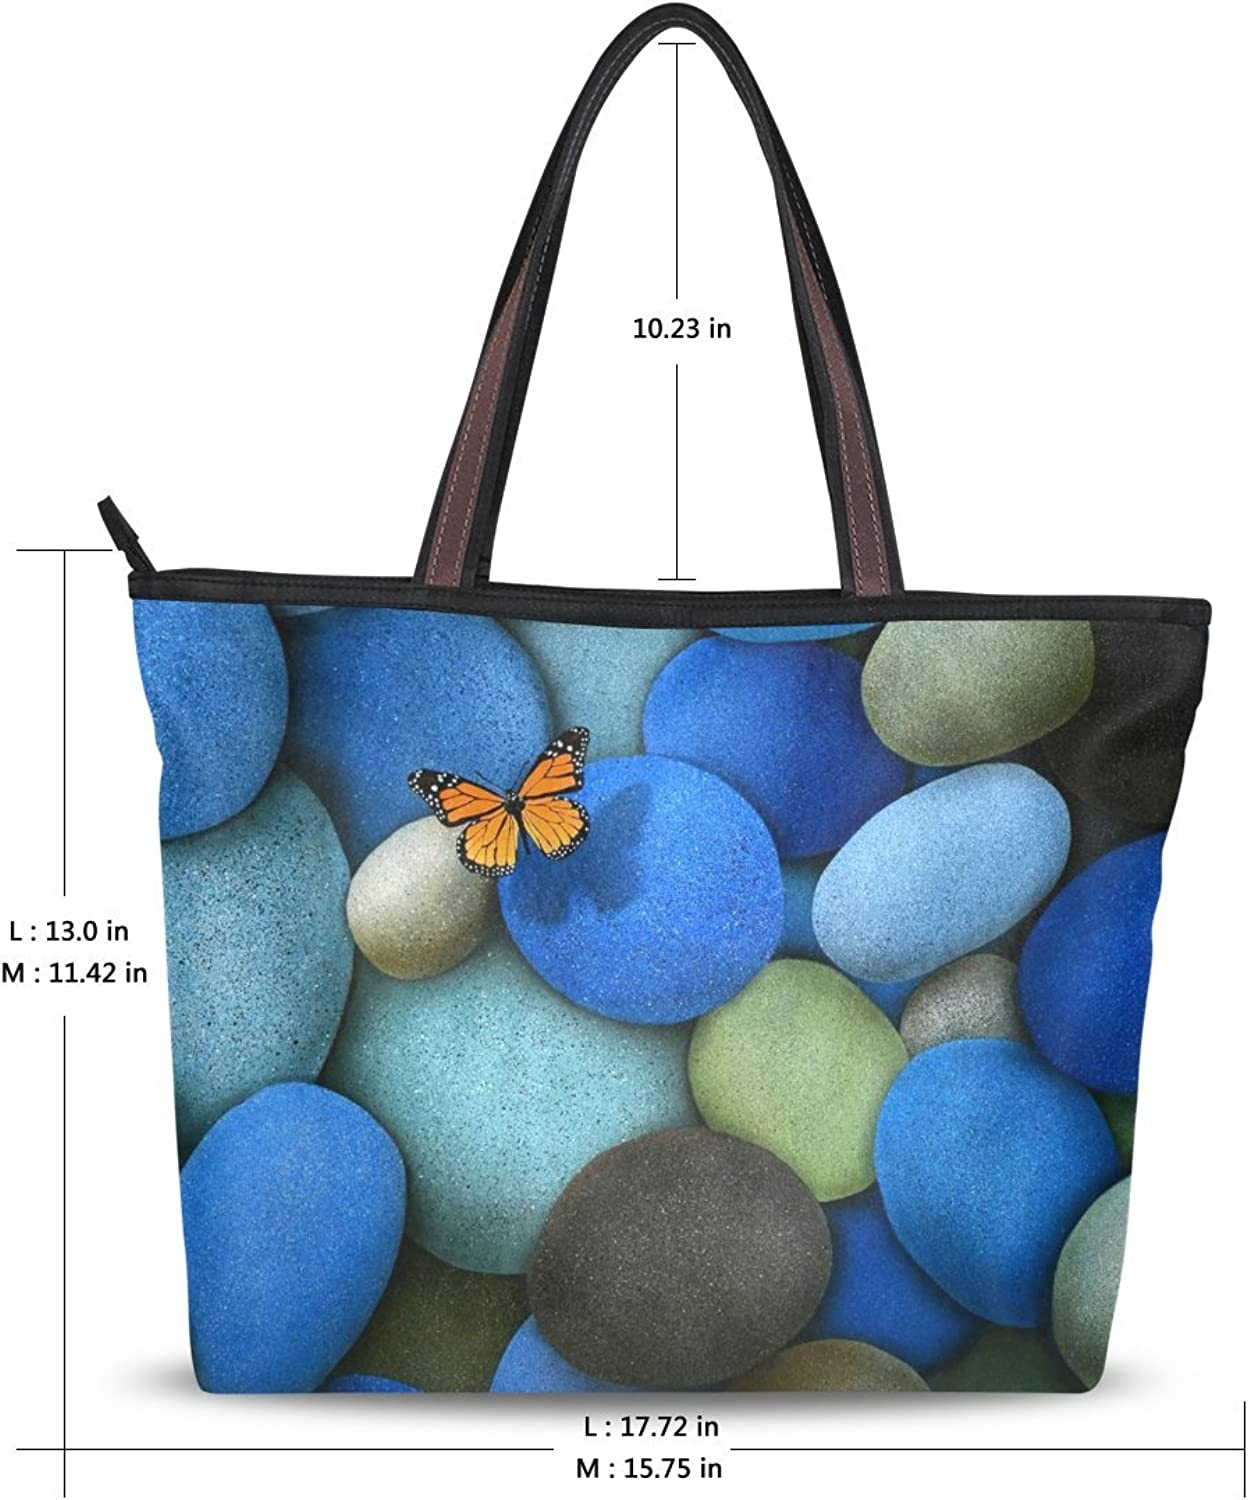 Use4 Womens Fashion Handbag Design Shoulder Bag Butterfly bluee Stone Tote Bags